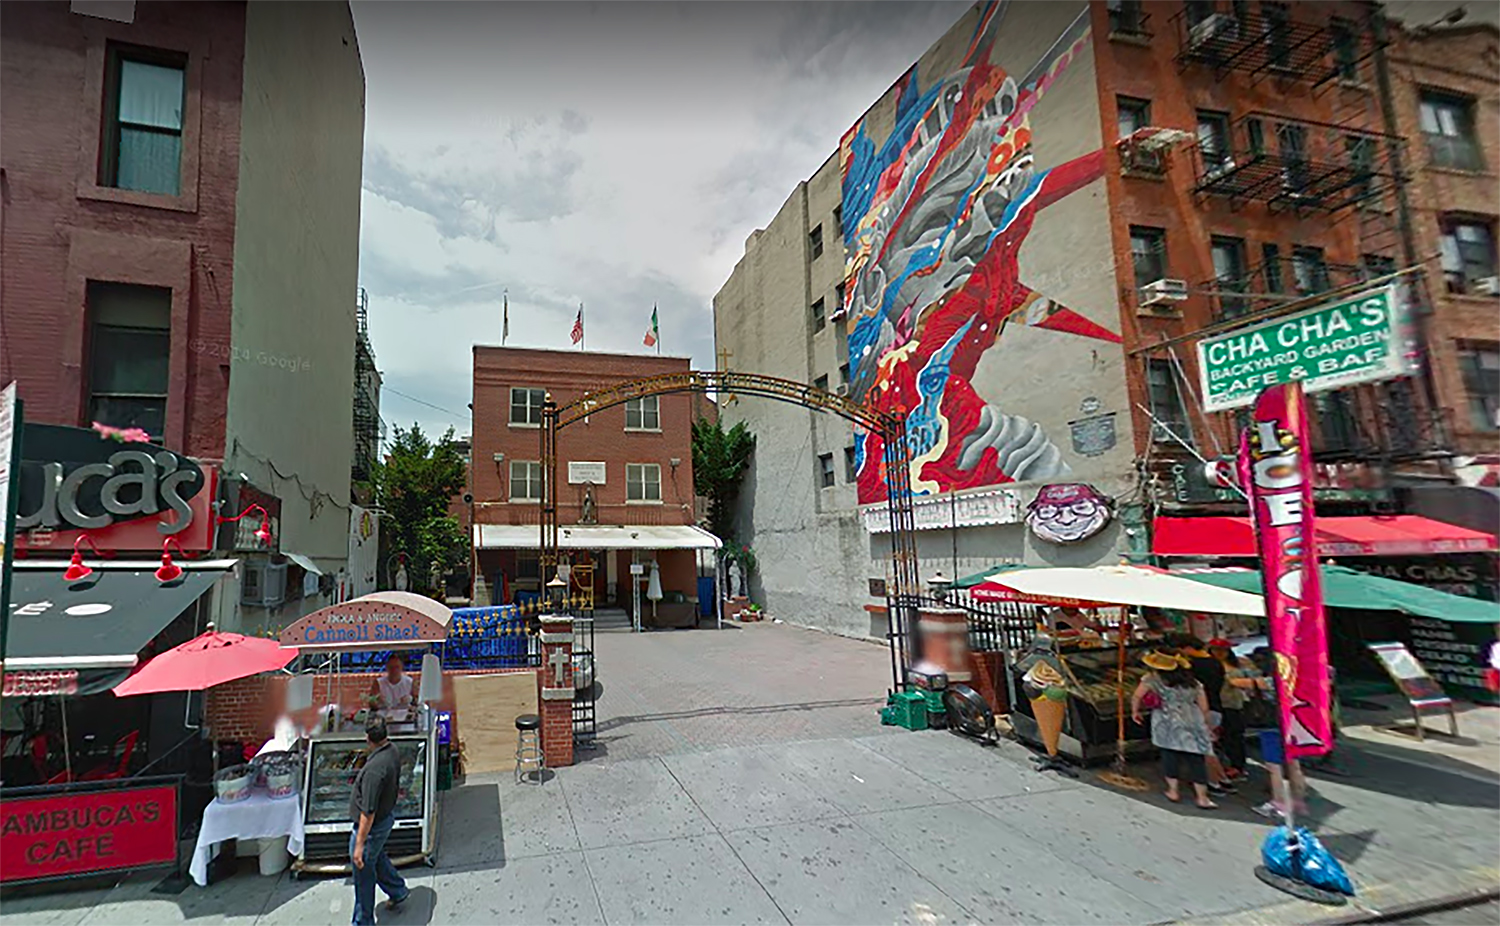 111 Mulberry Street in Little Italy, Manhattan